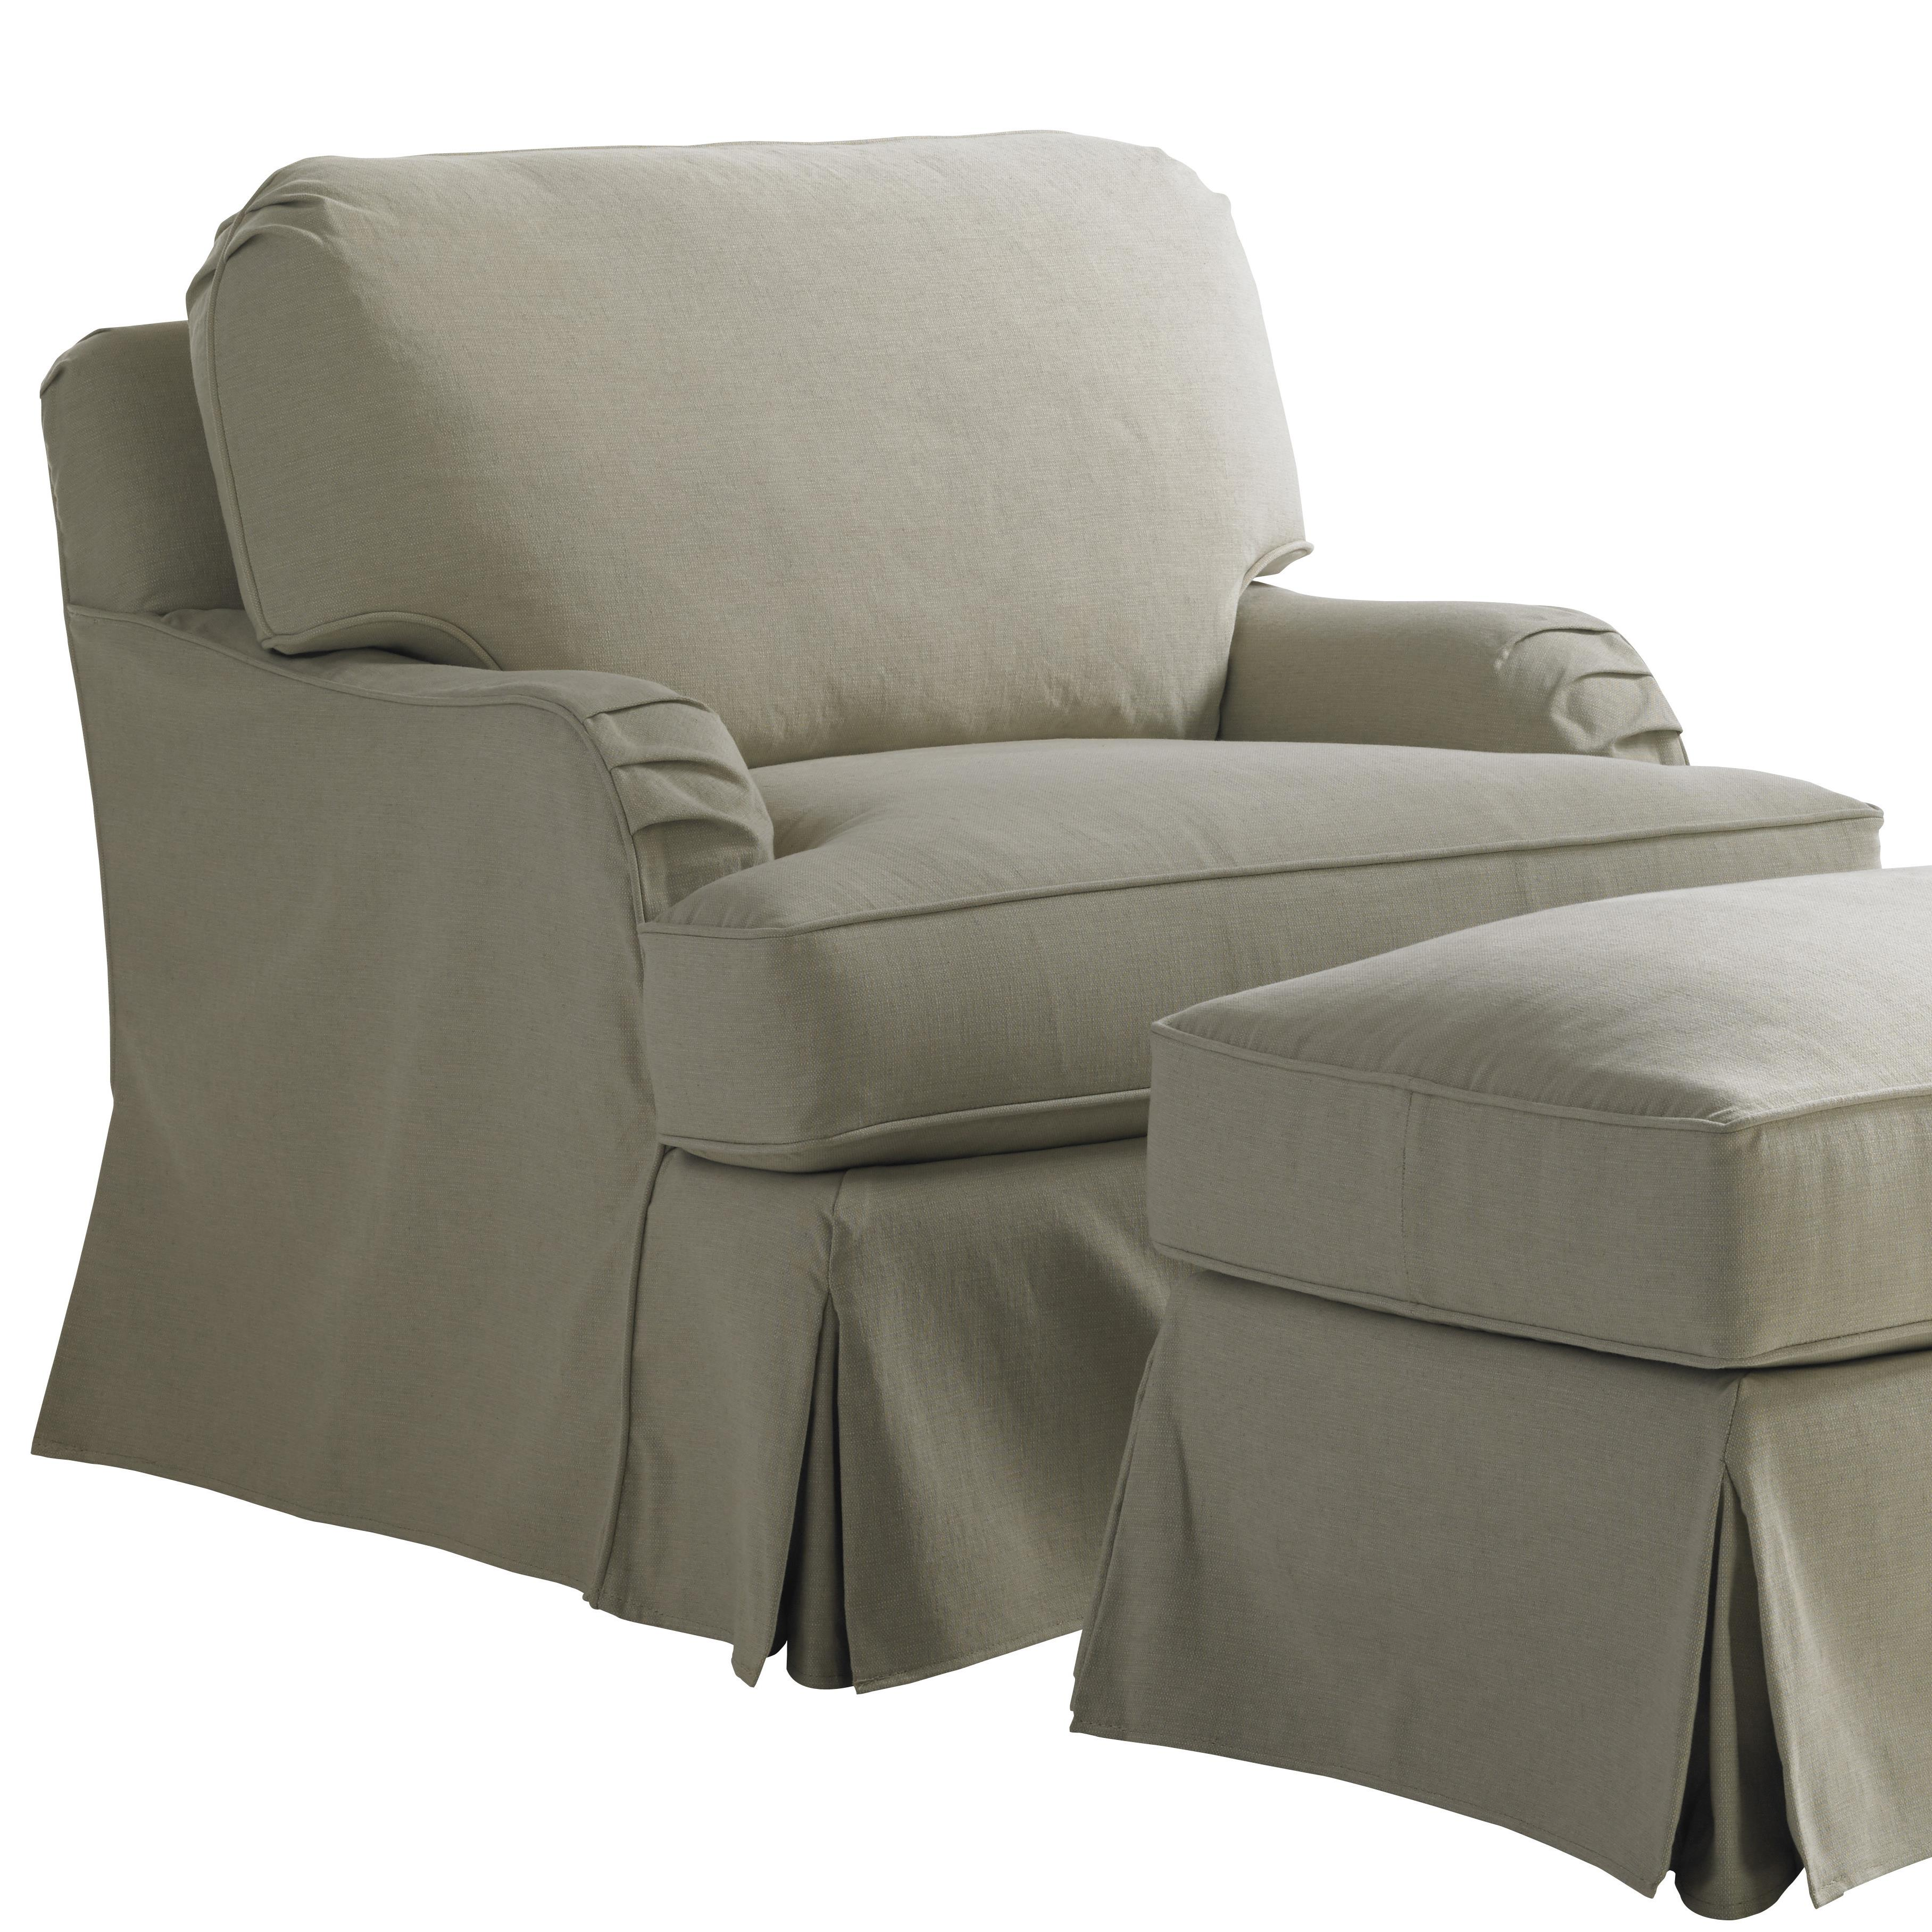 Coventry Hills Stowe Slipcover Swivel Chair by Lexington at Johnny Janosik